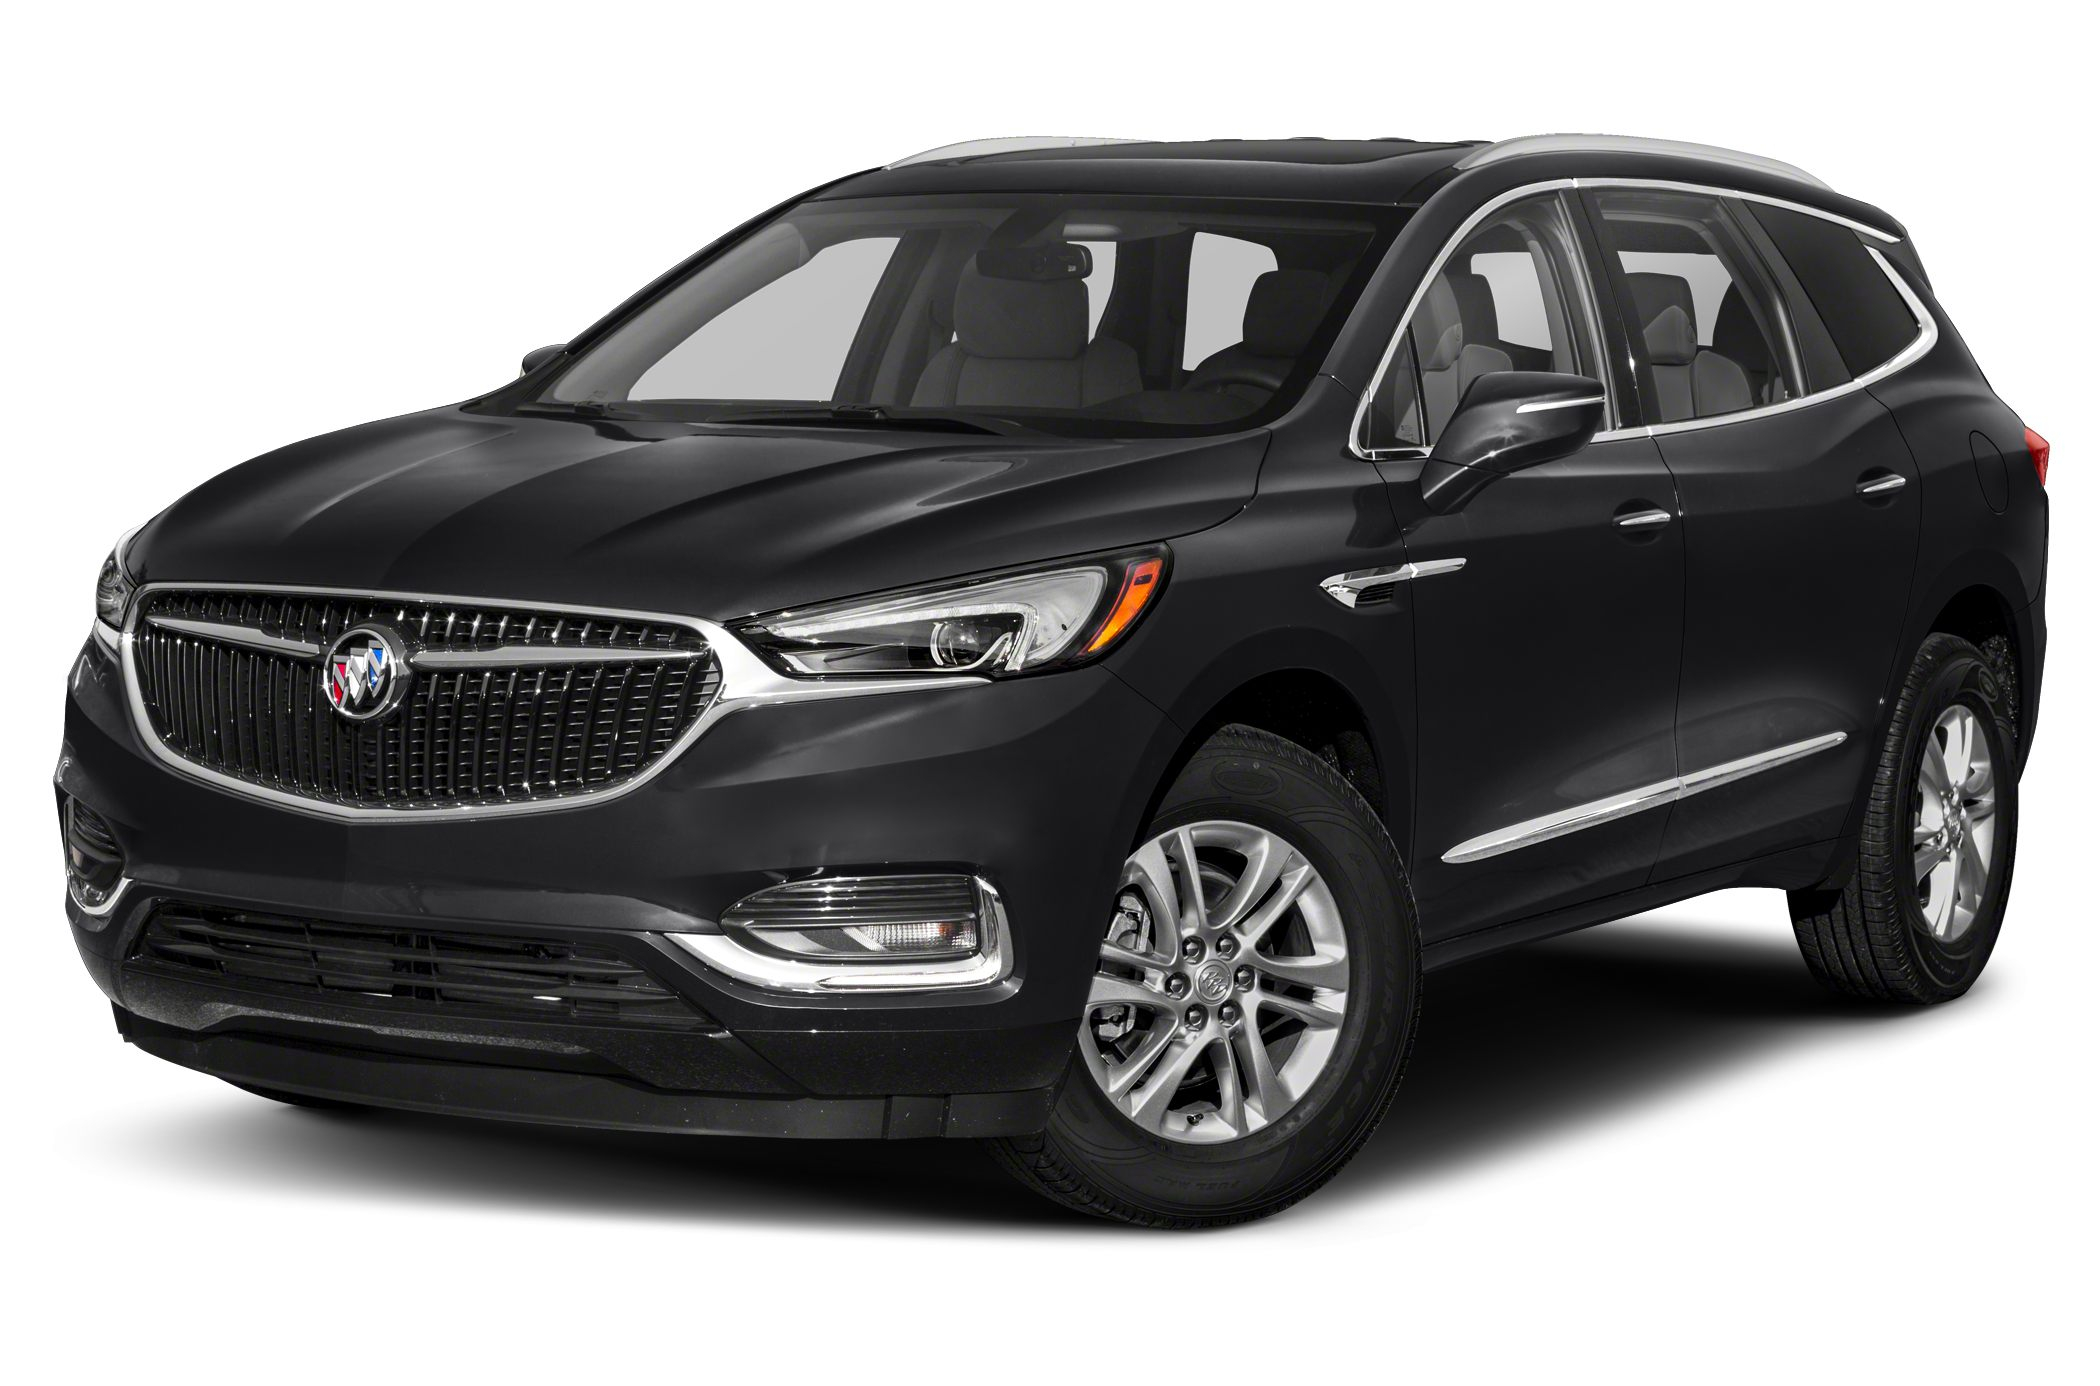 2020 Buick Enclave Deals, Prices, Incentives & Leases 2021 Buick Enclave Length, Leather, Lease Price